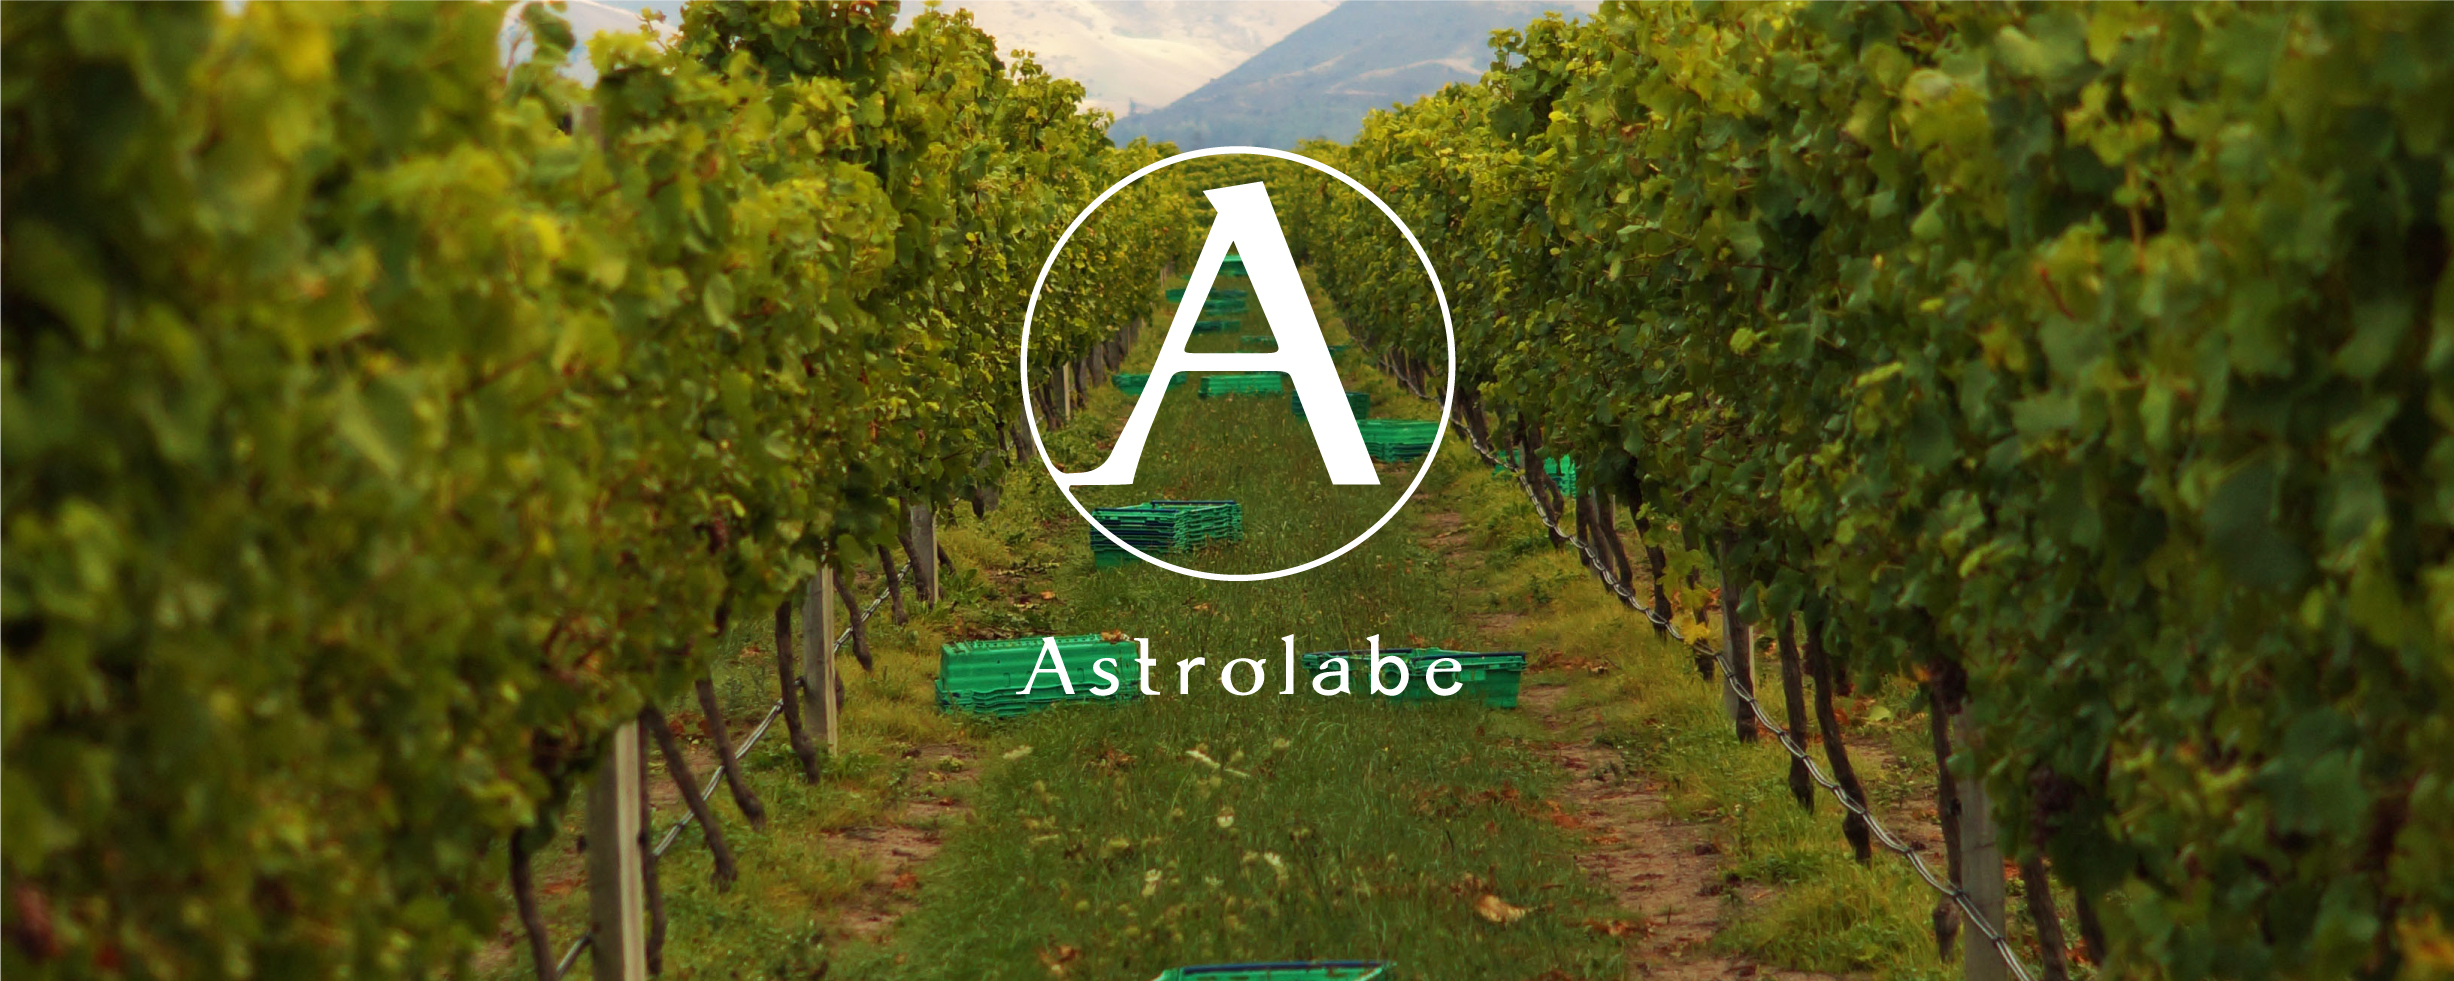 ASTROLABE WINES    MARLBOROUGH, NZ   Named after the ship that in 1827 charted and explored the Marlborough Coast, Astrolabe is a personal project for winemaker Simon Waghorn and his wife, Jane.  Astrolabe produces a range of wines that express the purity and intensity of fruit flavours naturally afforded by the climate and soils of the Marlborough region. All grapes are sourced from unique Marlborough sites, carefully chosen to add complexity and completeness in the wines.  Simon is fascinated by the distinctive qualities of the Marlborough sub-regions, whether bottled alone or blended as part of the Marlborough classic. All Simon's skill and experience combine to capture the essence of Marlborough in wines of purity, focus and elegance.